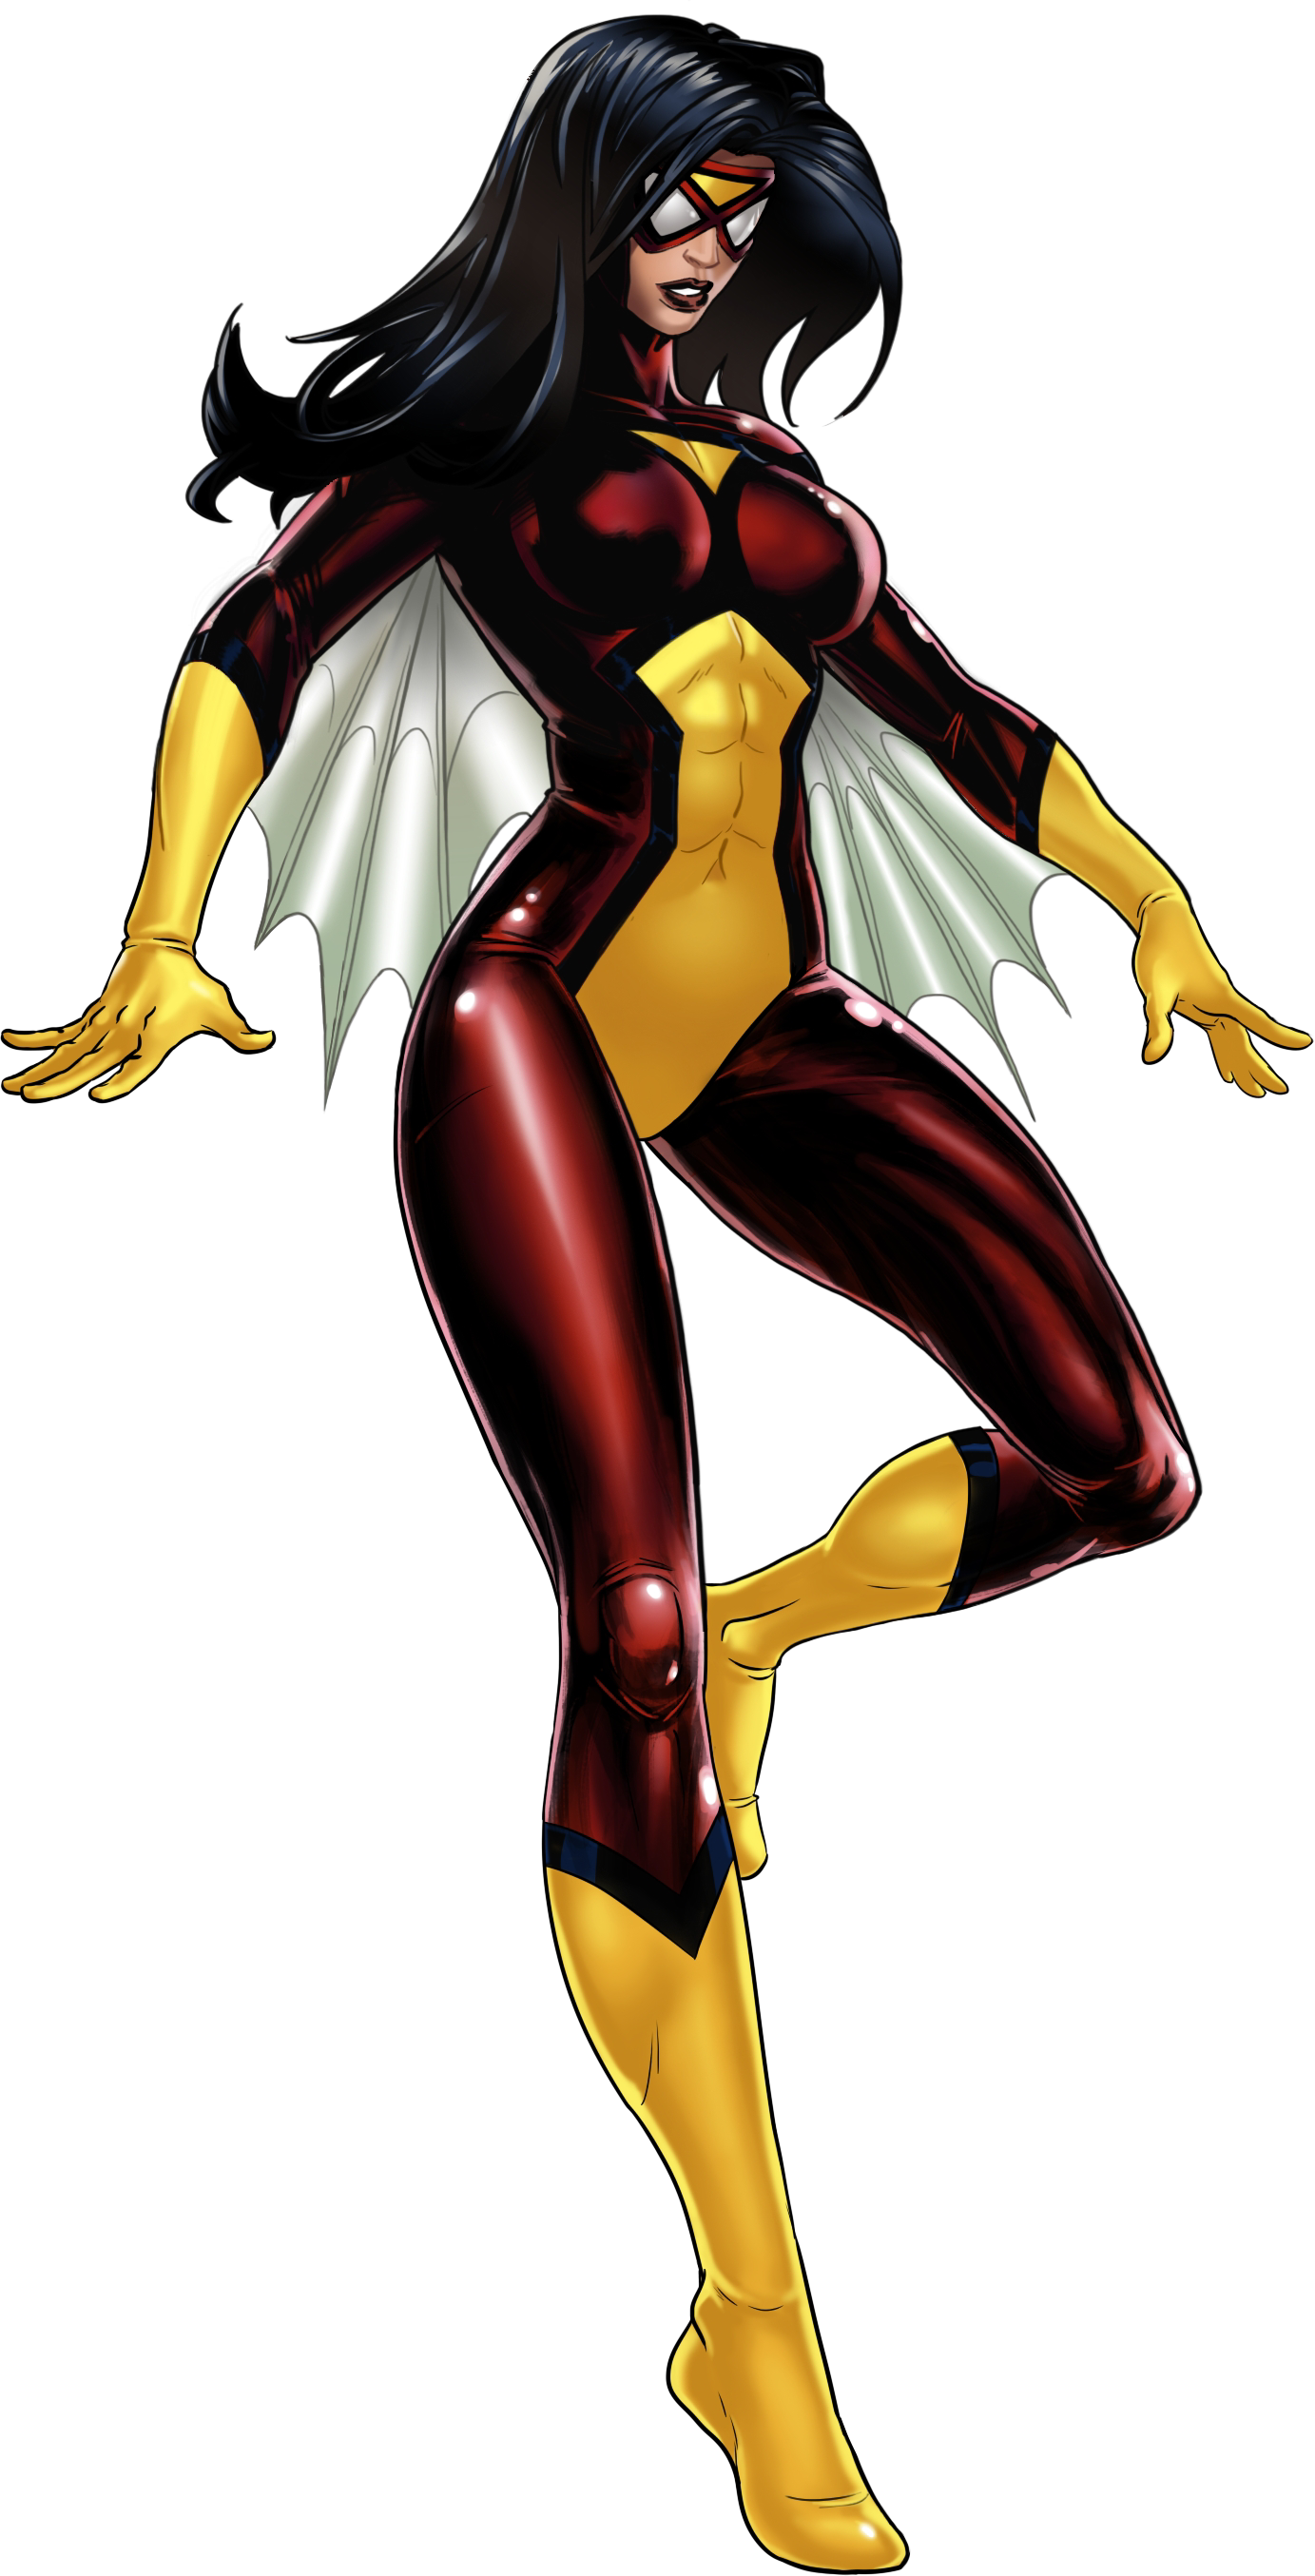 Spider woman png. Image jessica drew death